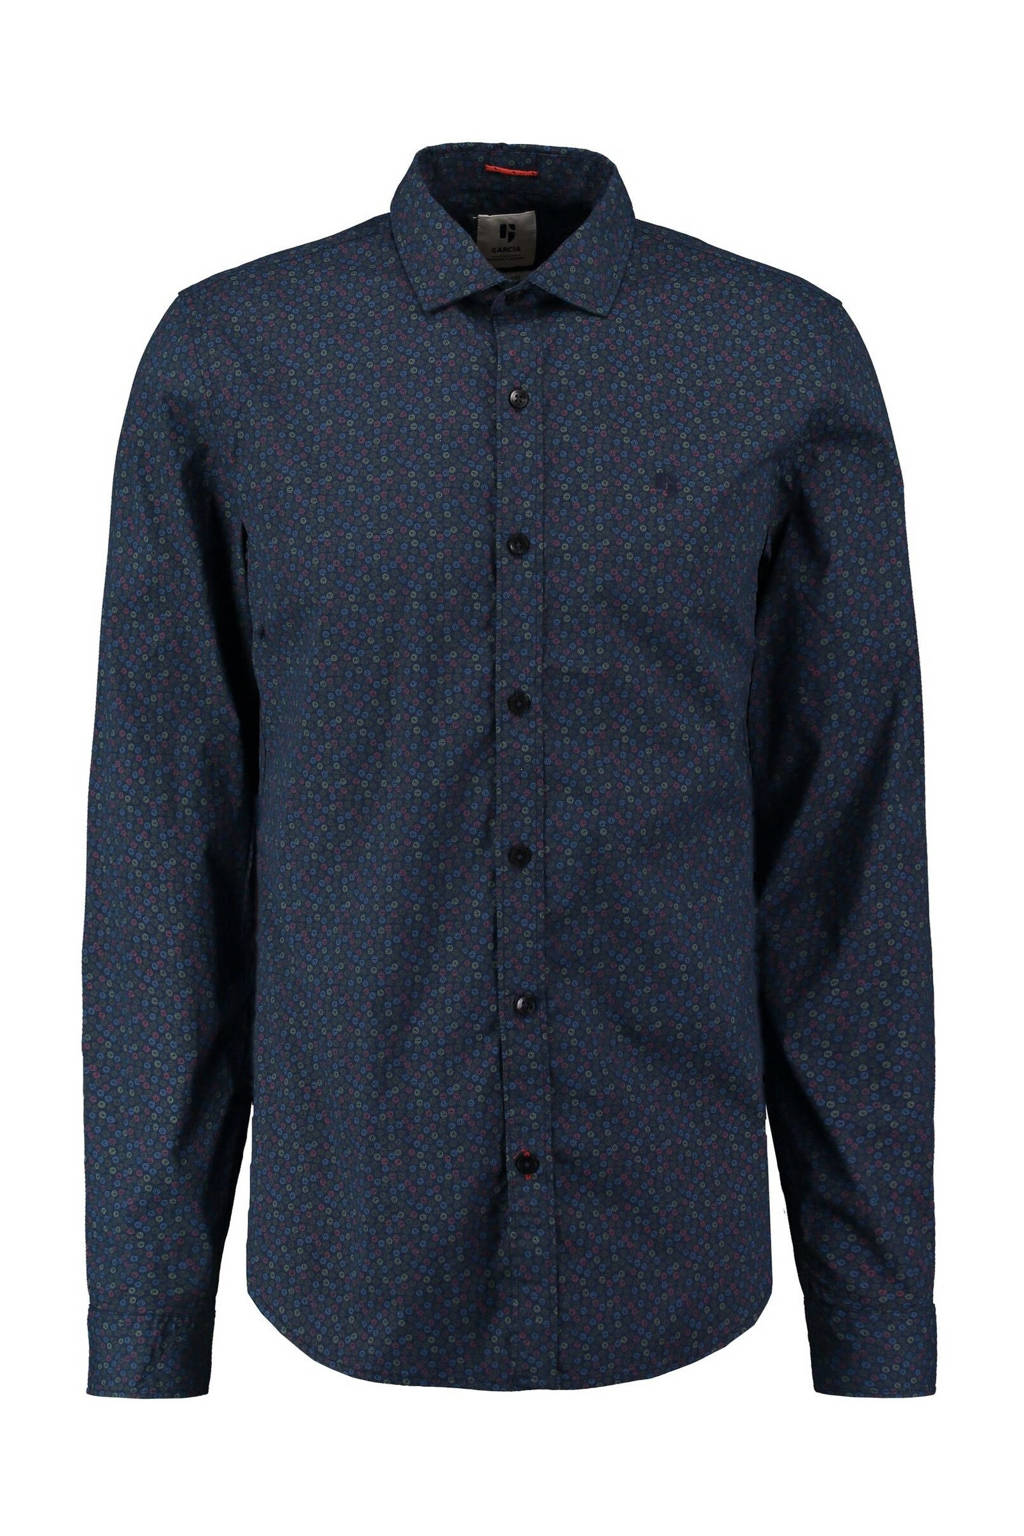 Garcia regular fit overhemd met all over print donkerblauw, Donkerblauw